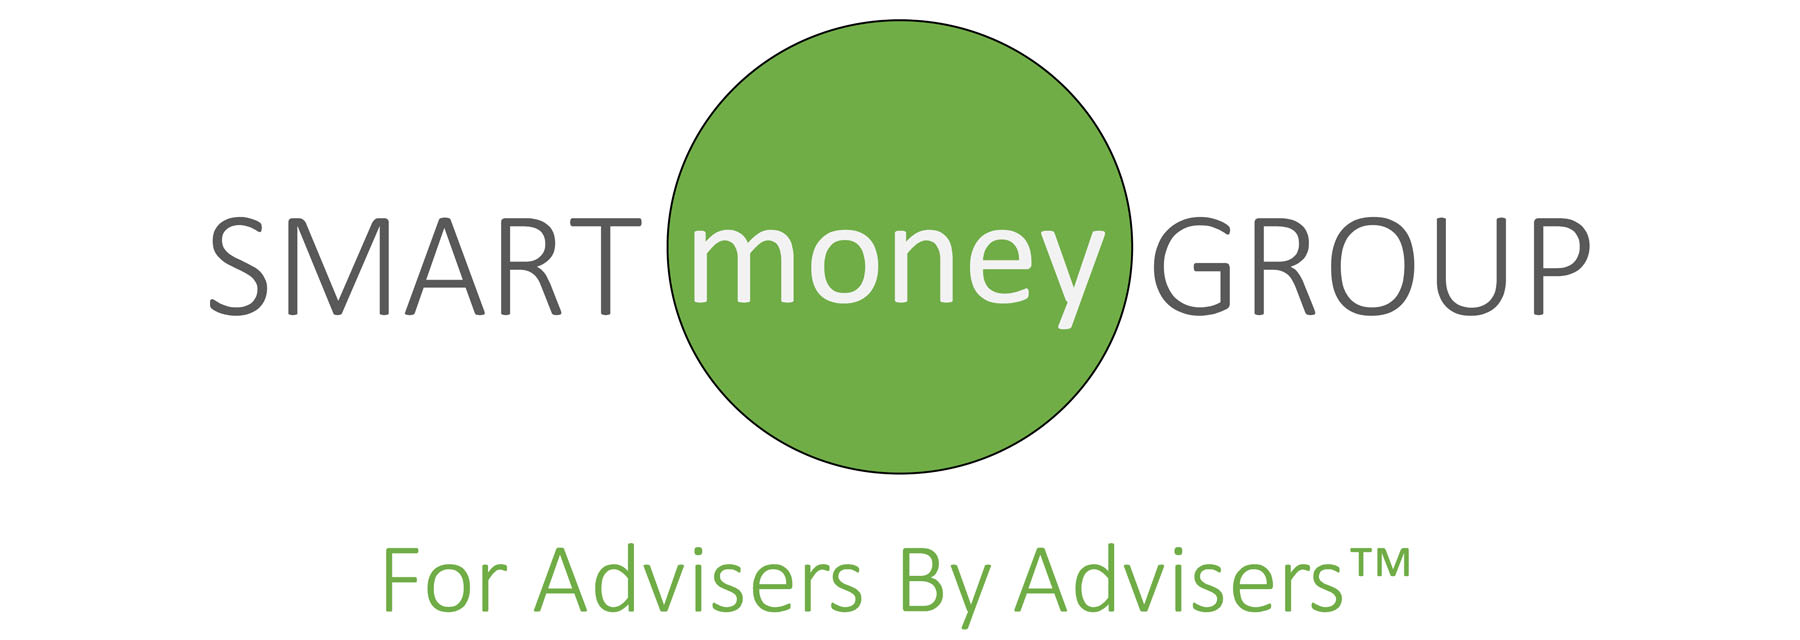 Smart Money Group, LLC Logo